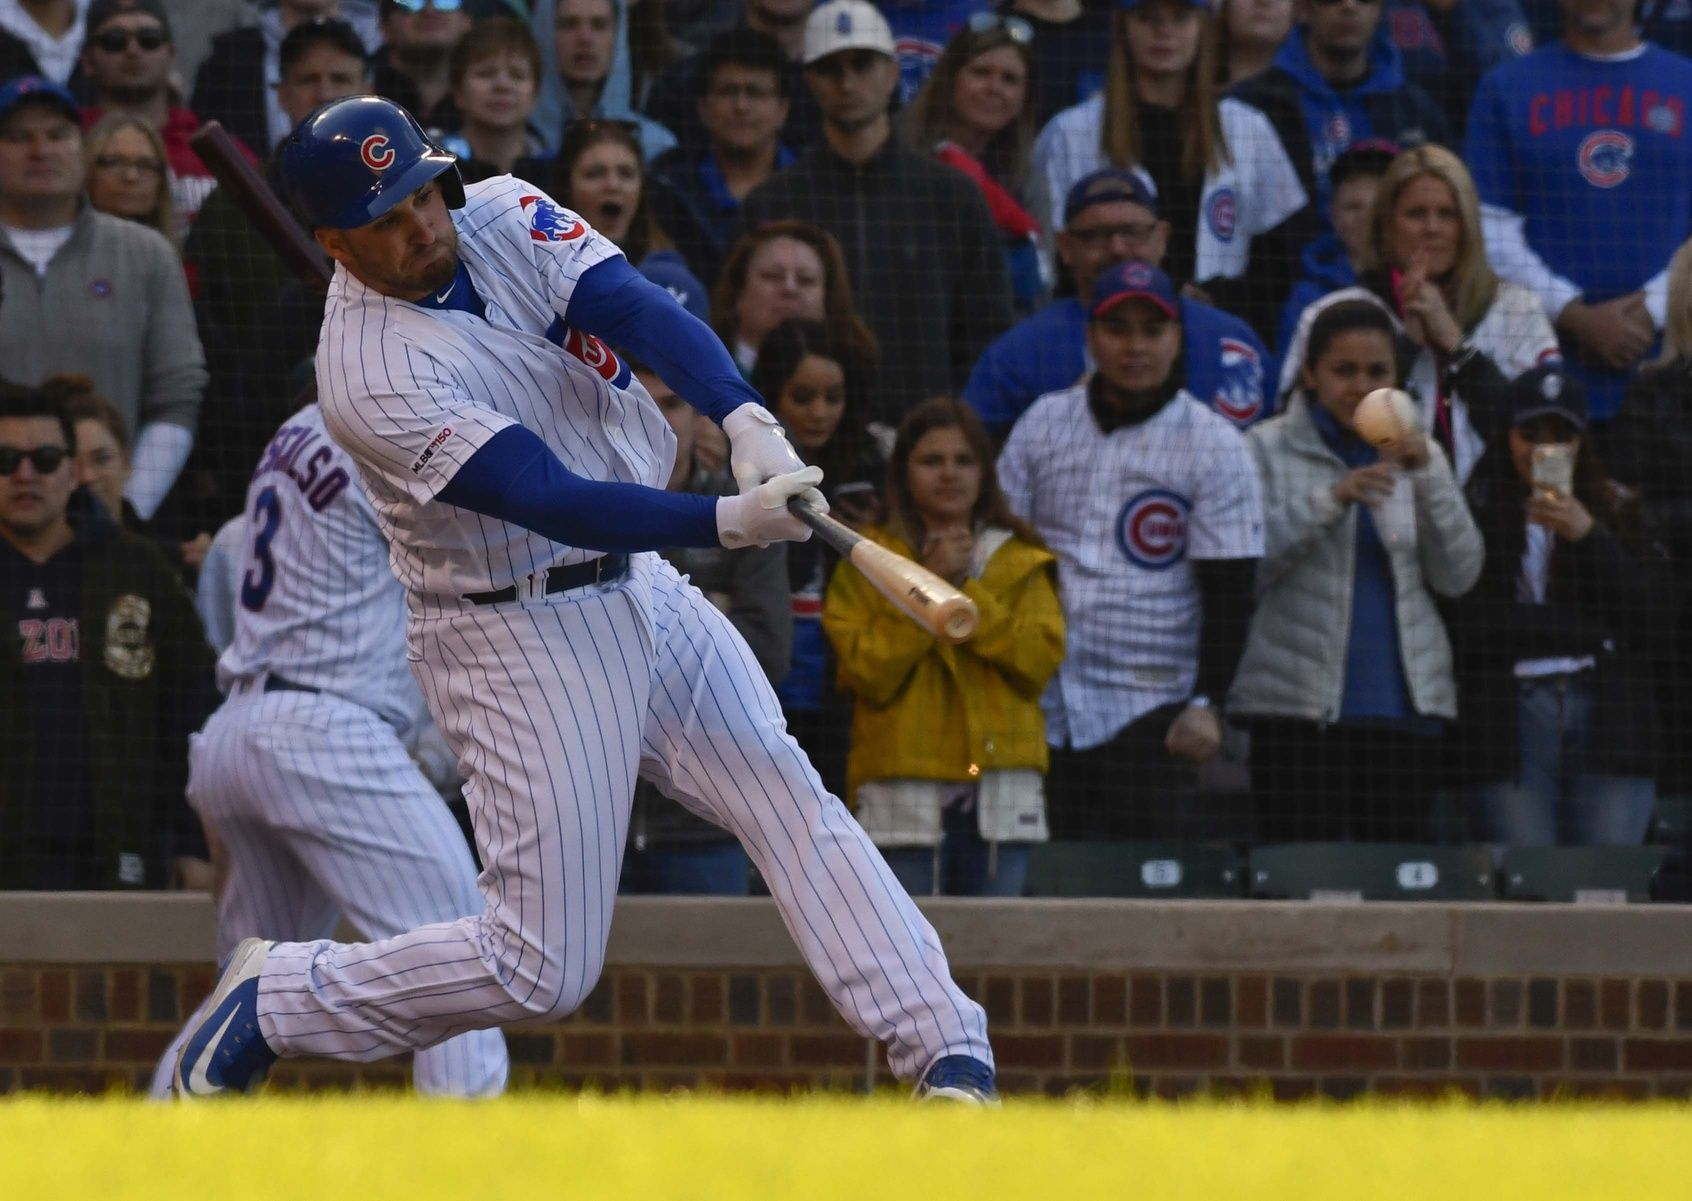 Love seeing the way the Cubs player has the ball flying